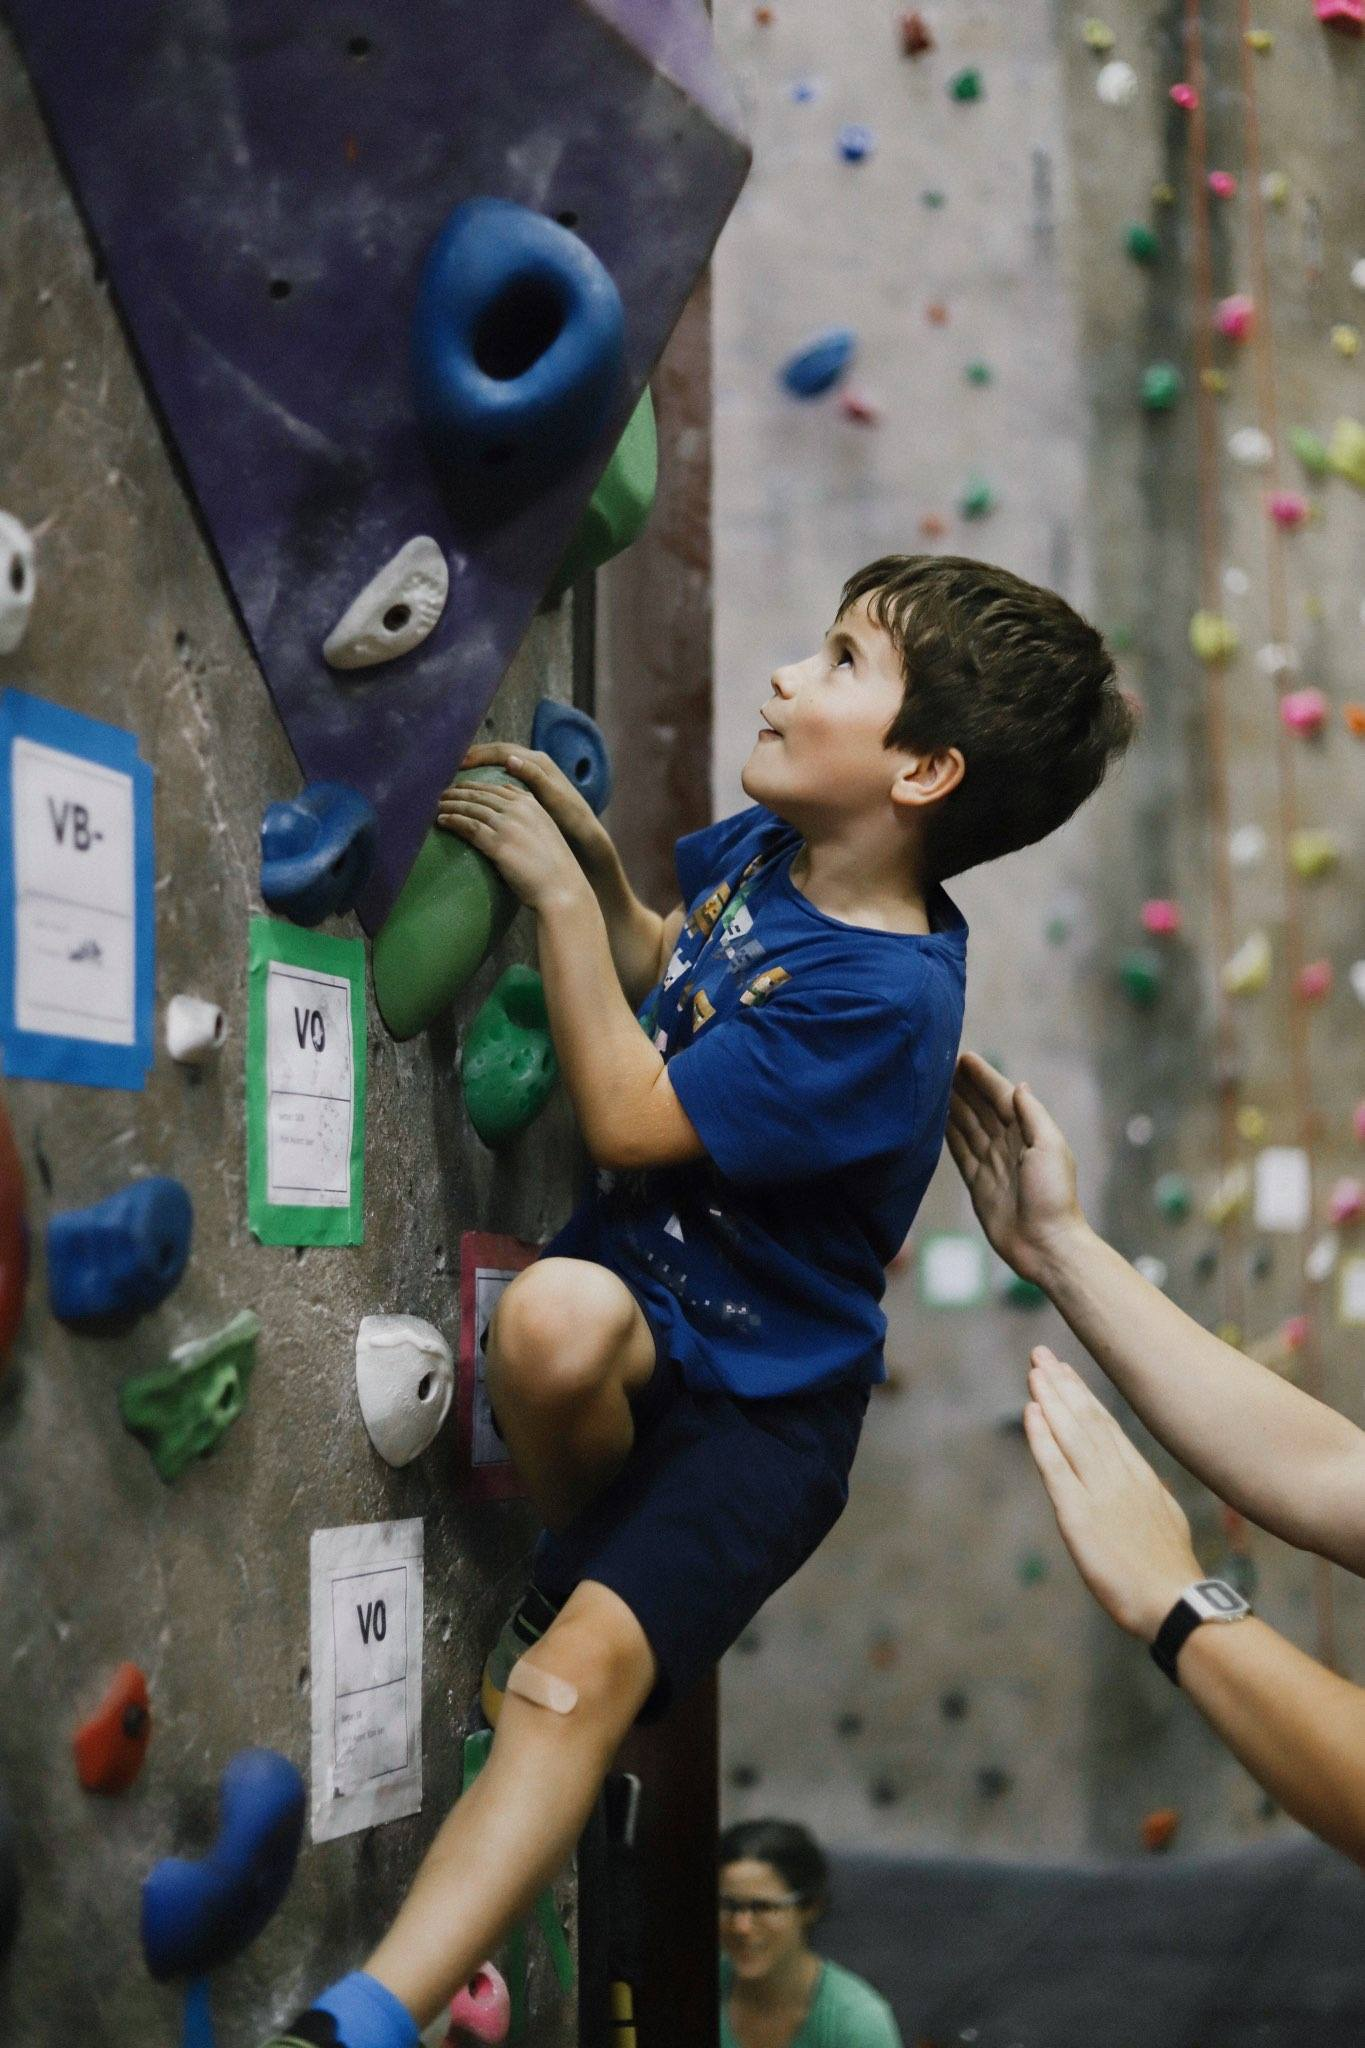 Build Confidence - Learn new climbing skills and set concrete climbing goals to work towards achieving during the season.